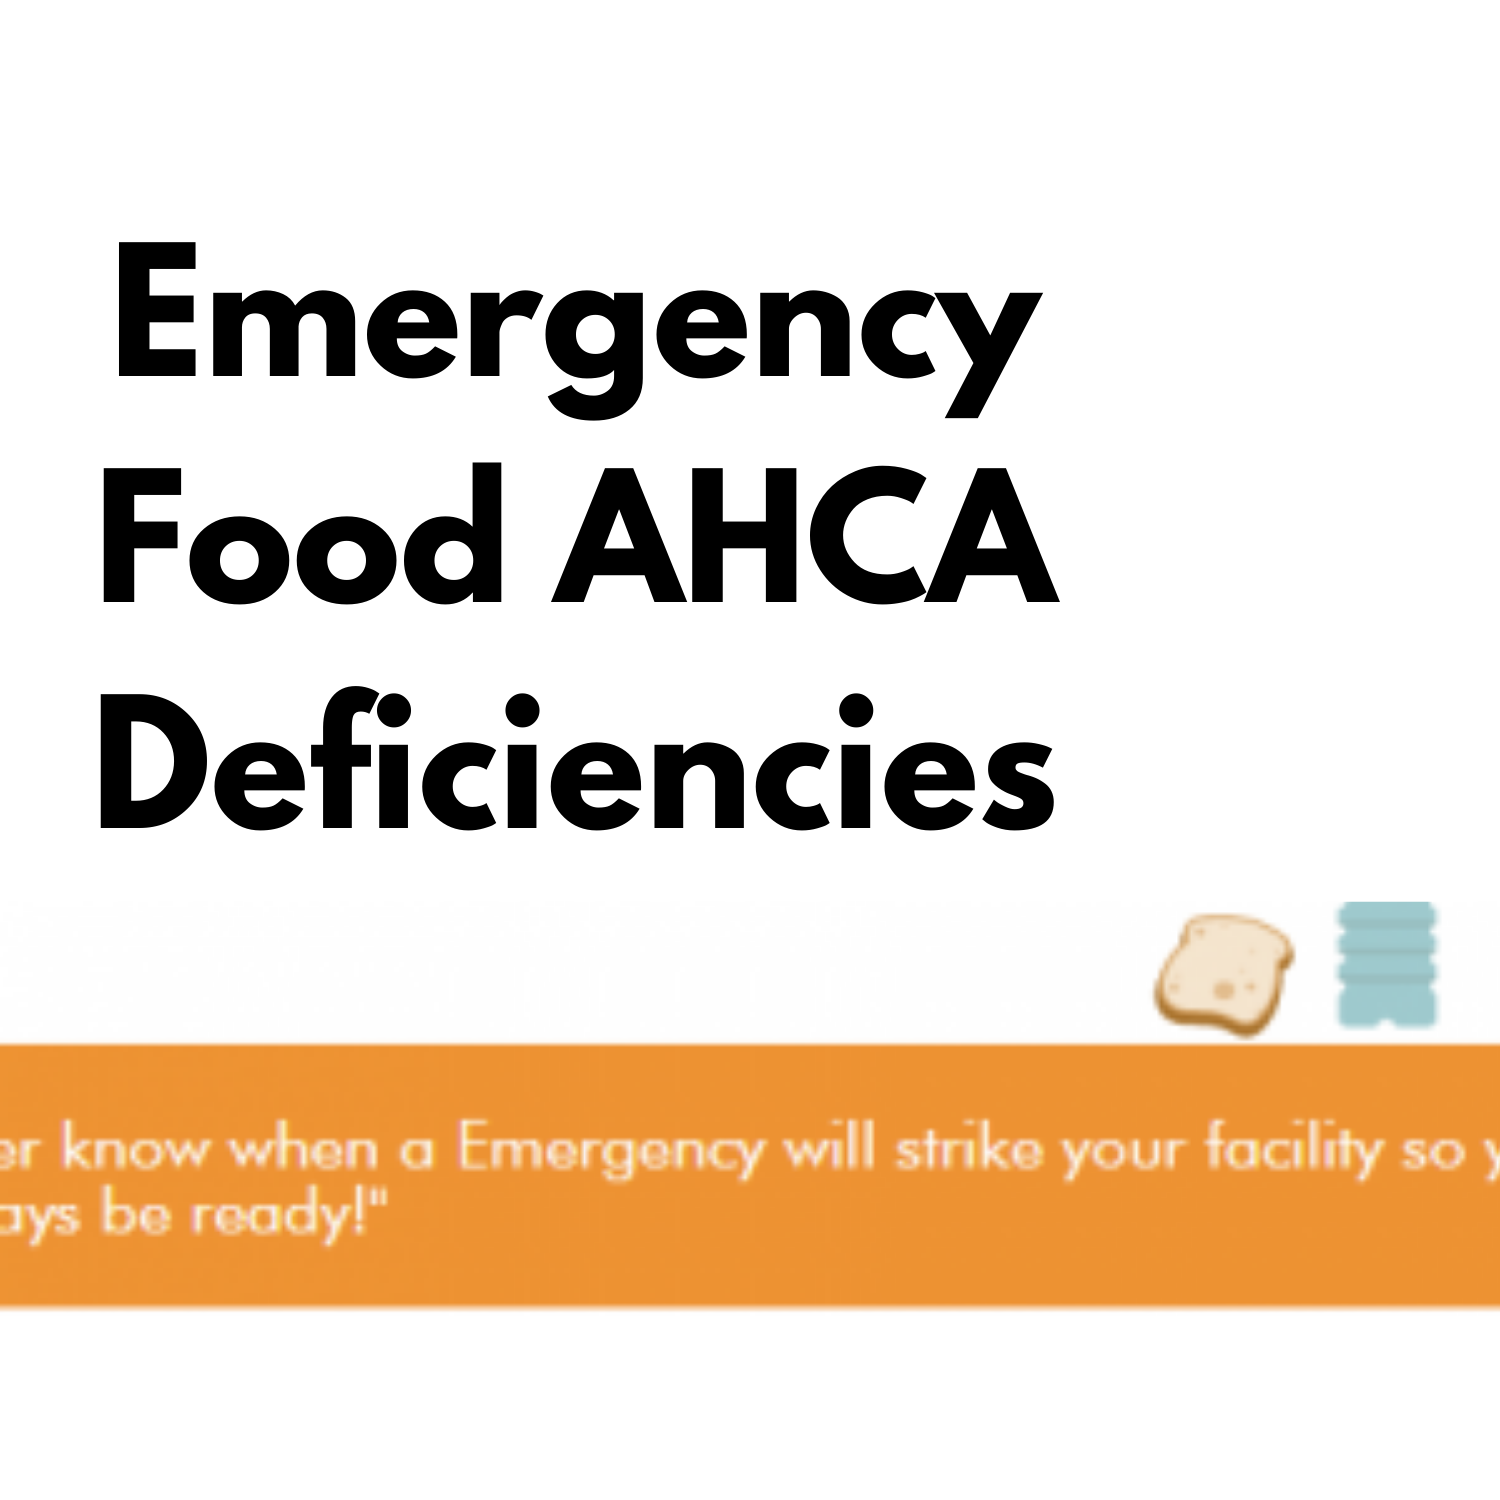 Emergency Food AHCA Deficiencies